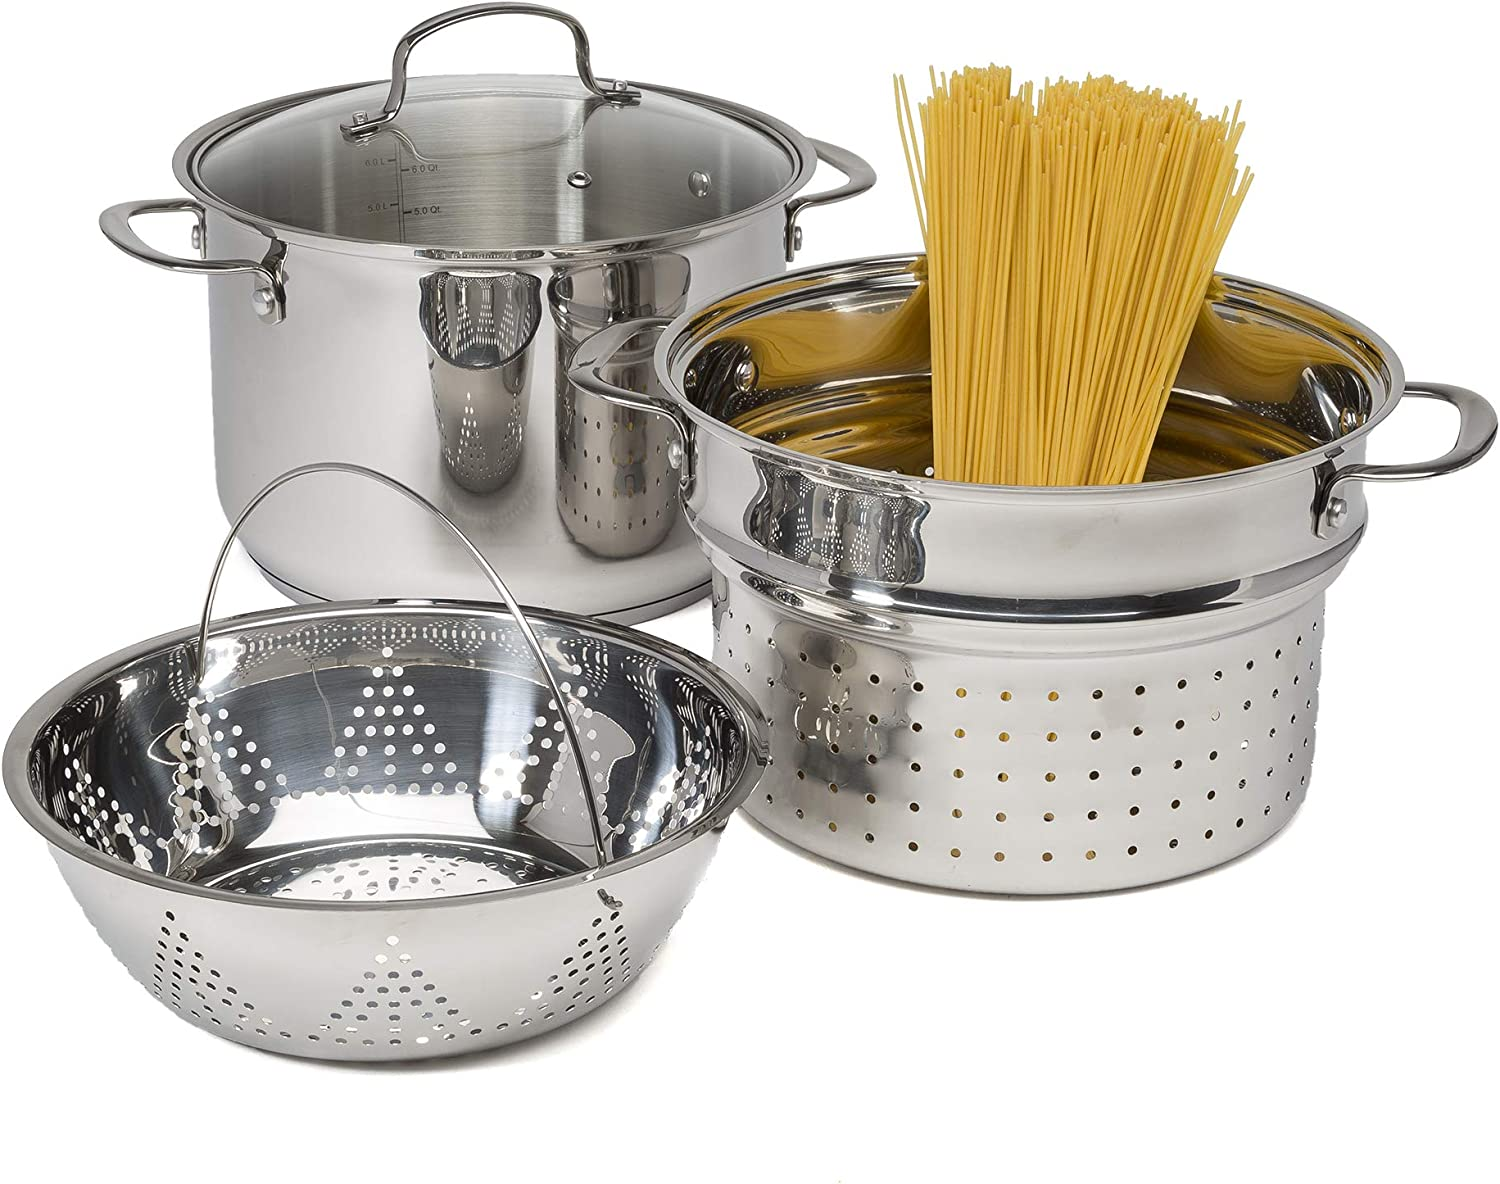 Goodful Stainless Steel 8 Quart Multi-Cooker Cookware Set, 4 Piece Pasta/Steamer